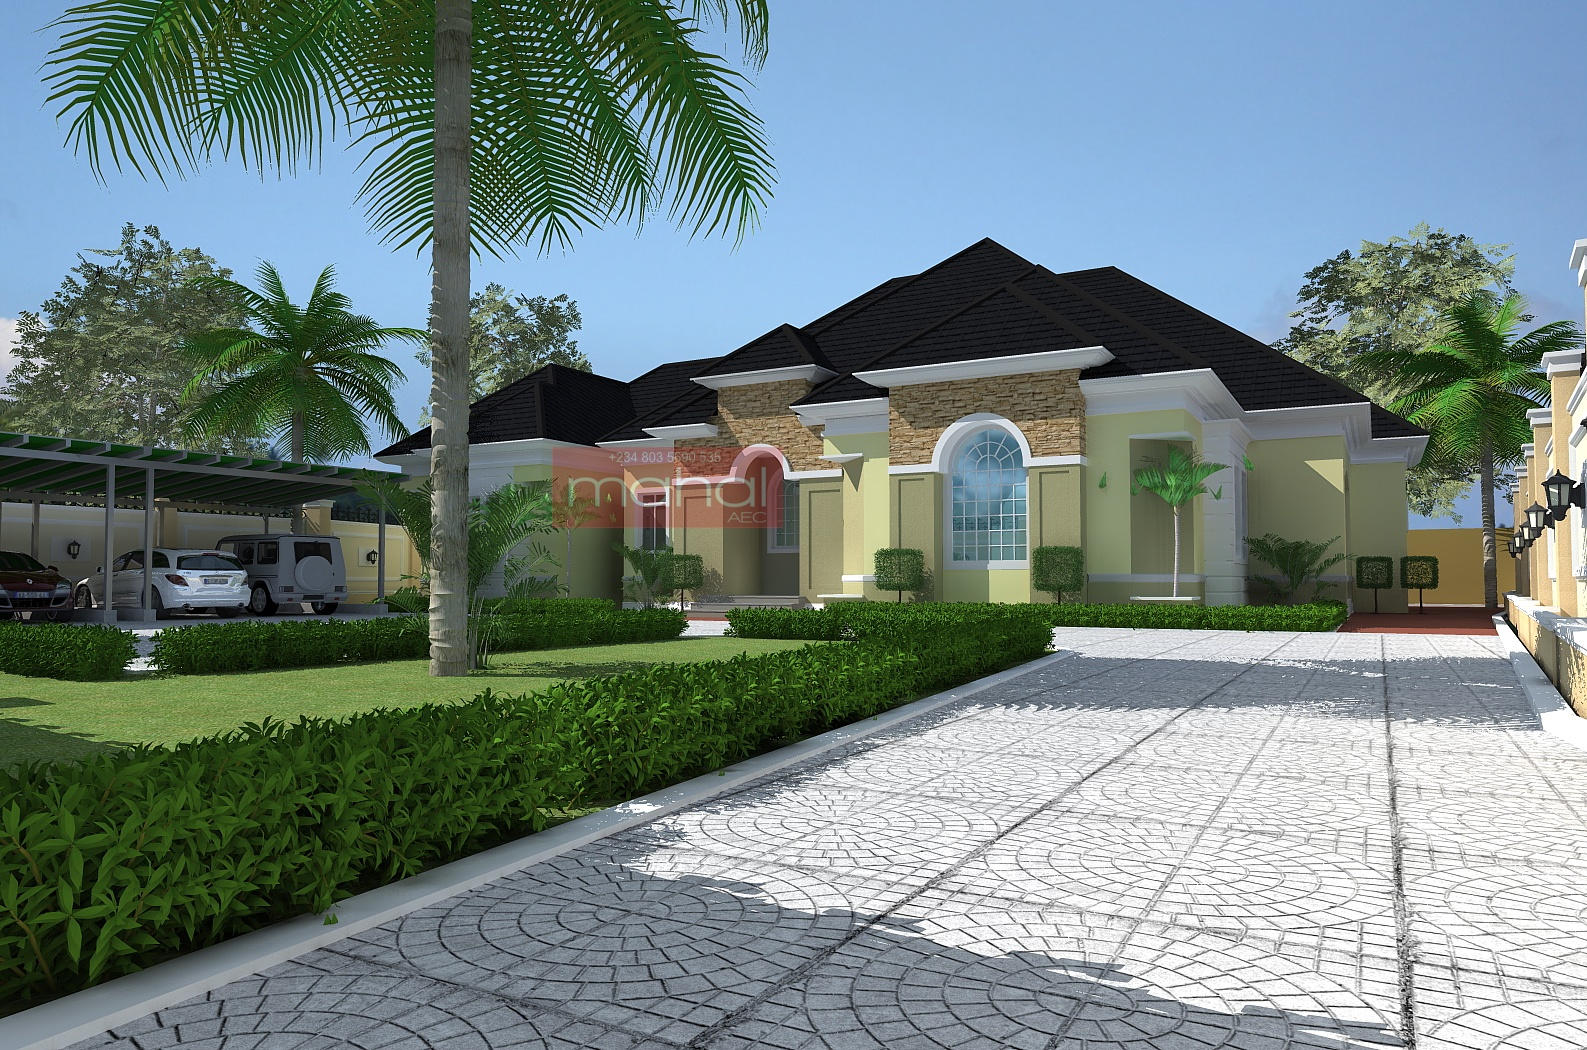 Contemporary nigerian residential architecture luxury 5 for Nigerian architectural designs